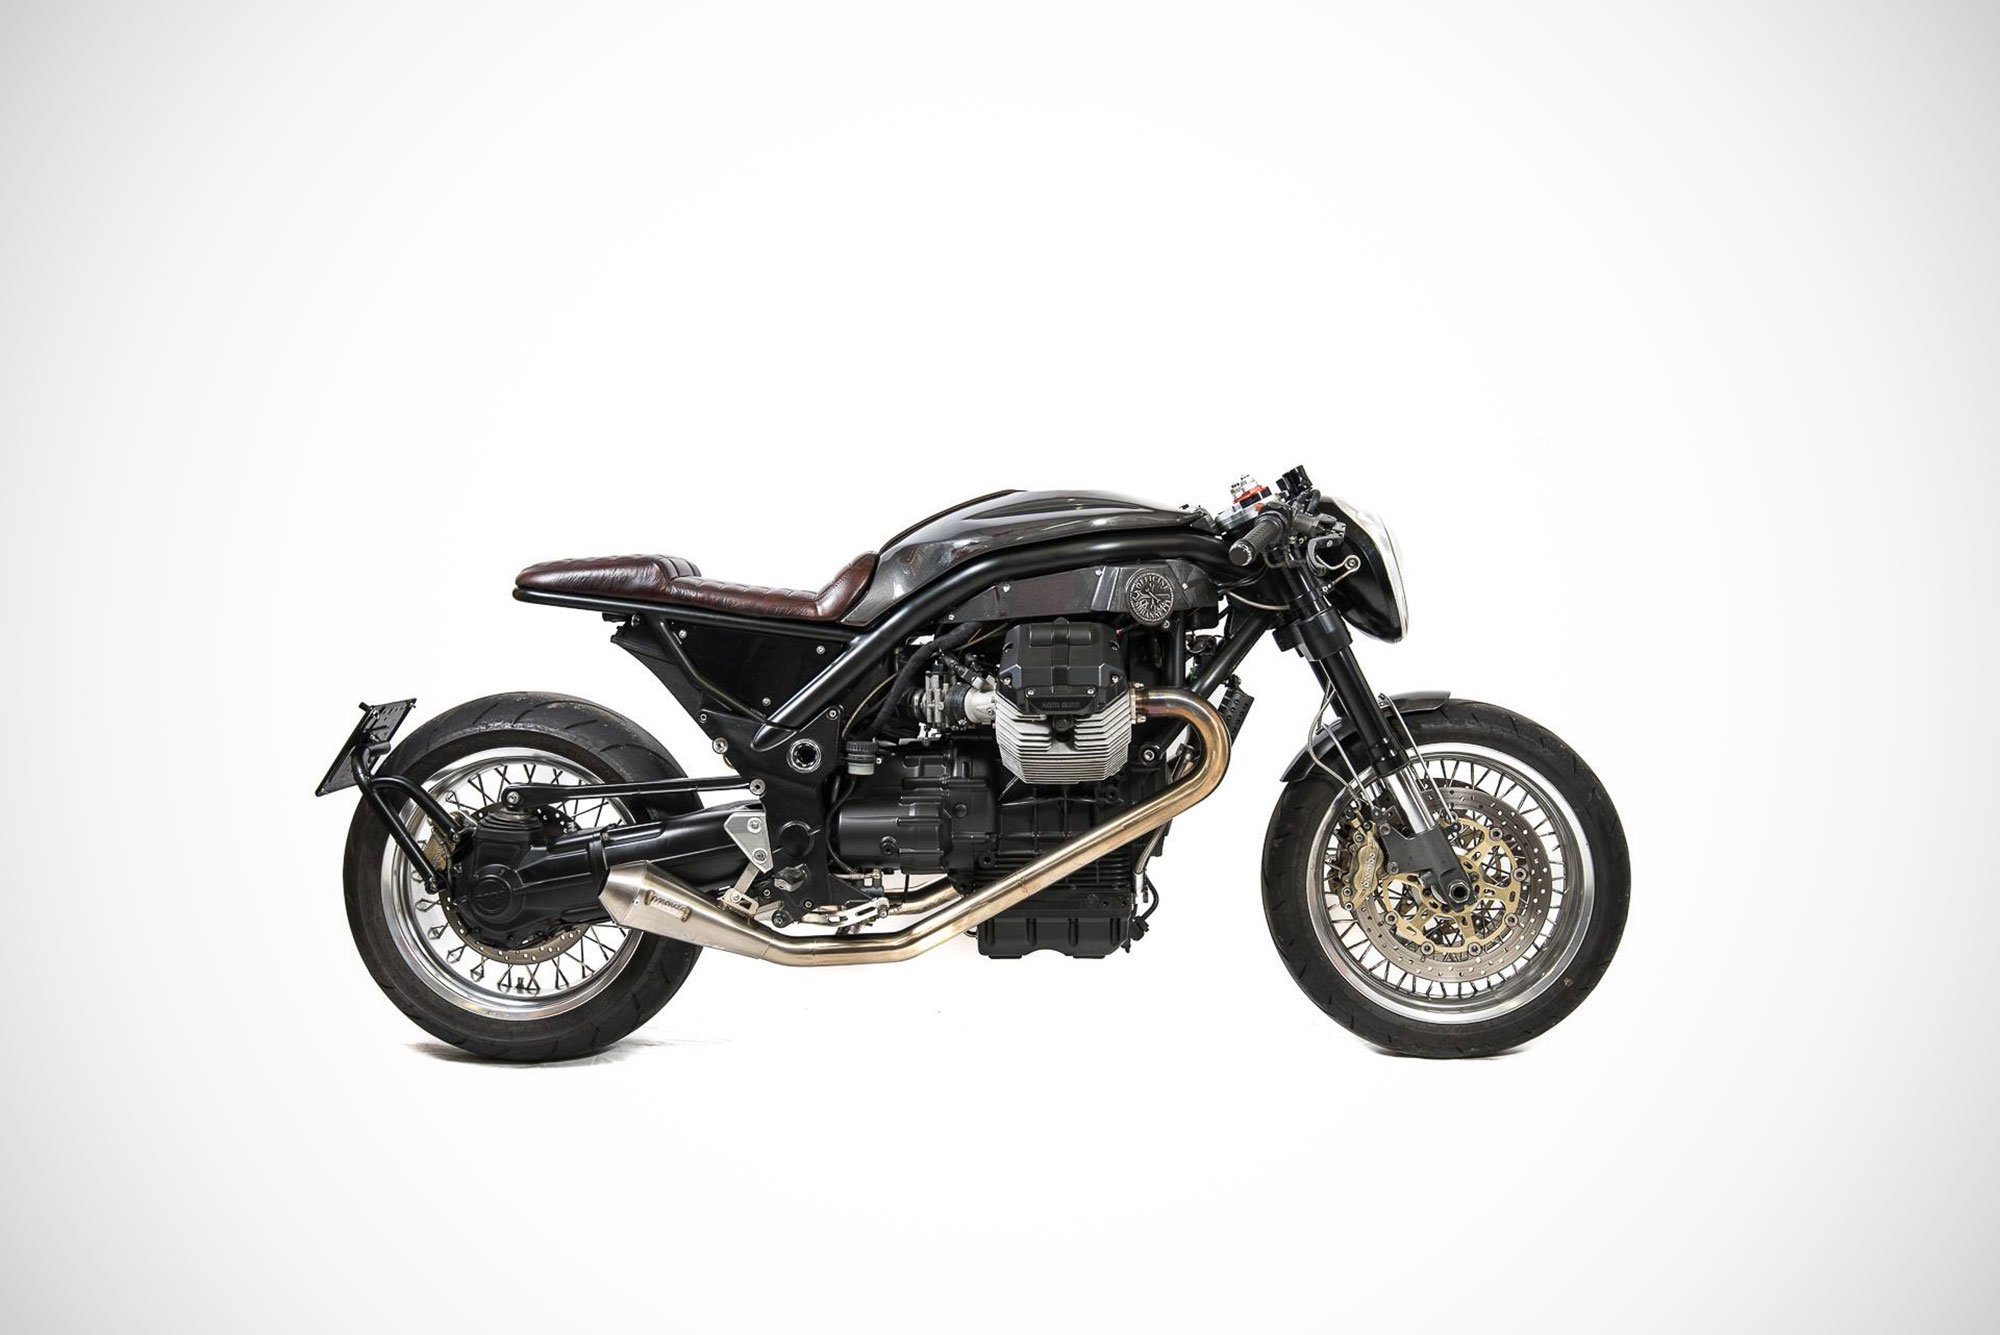 Moto guzzi griso photo - 4